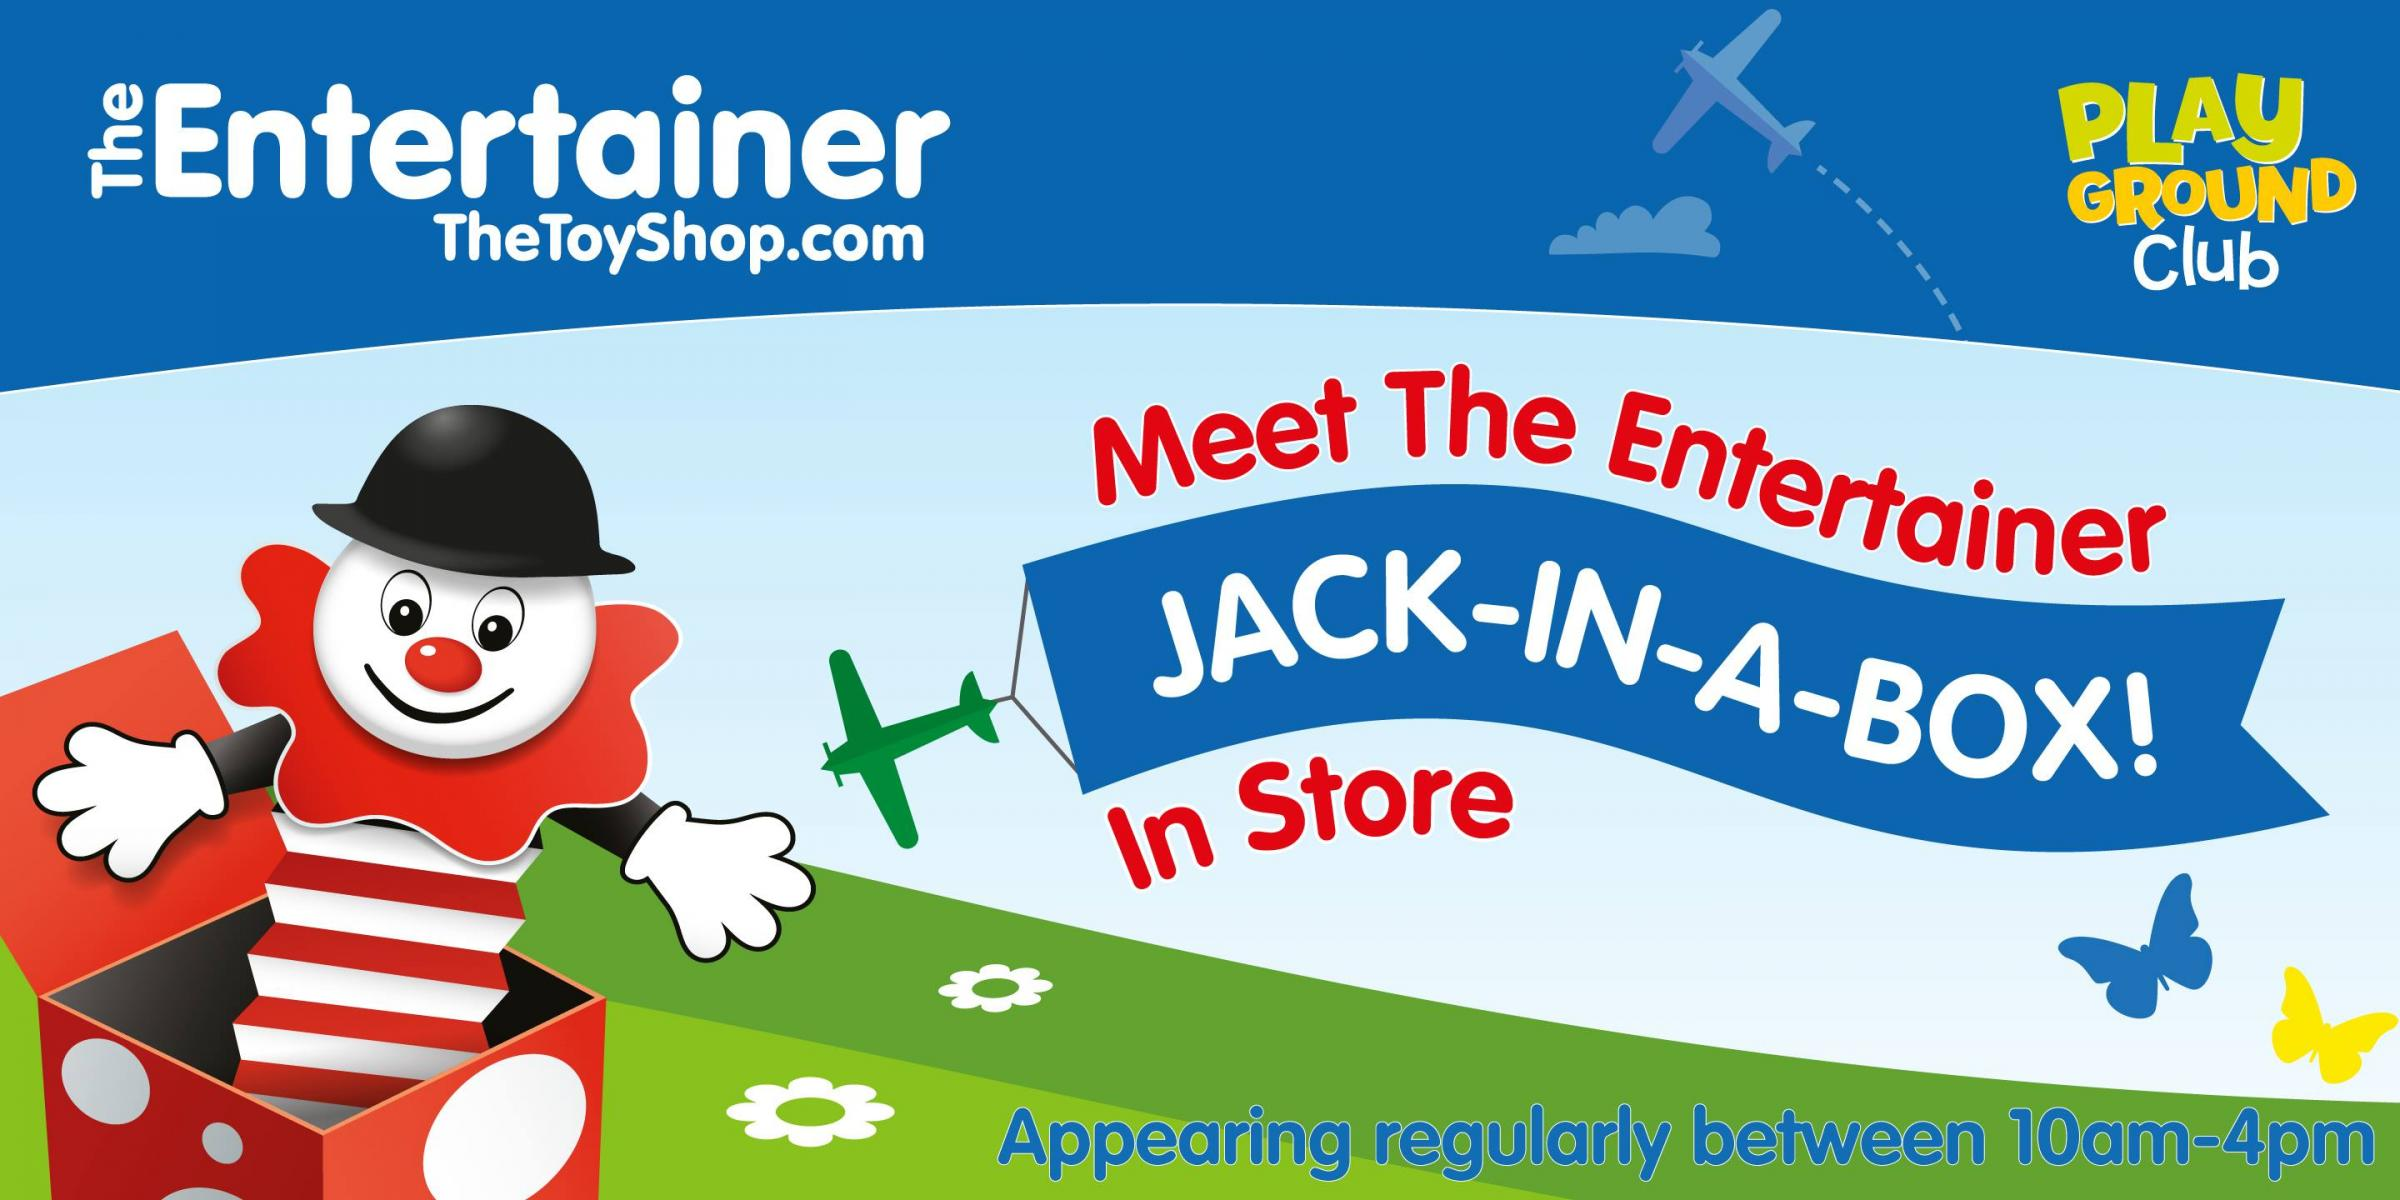 Meet Jack-in-a-box at The Entertainer at Two Rivers Sat 25th Jan